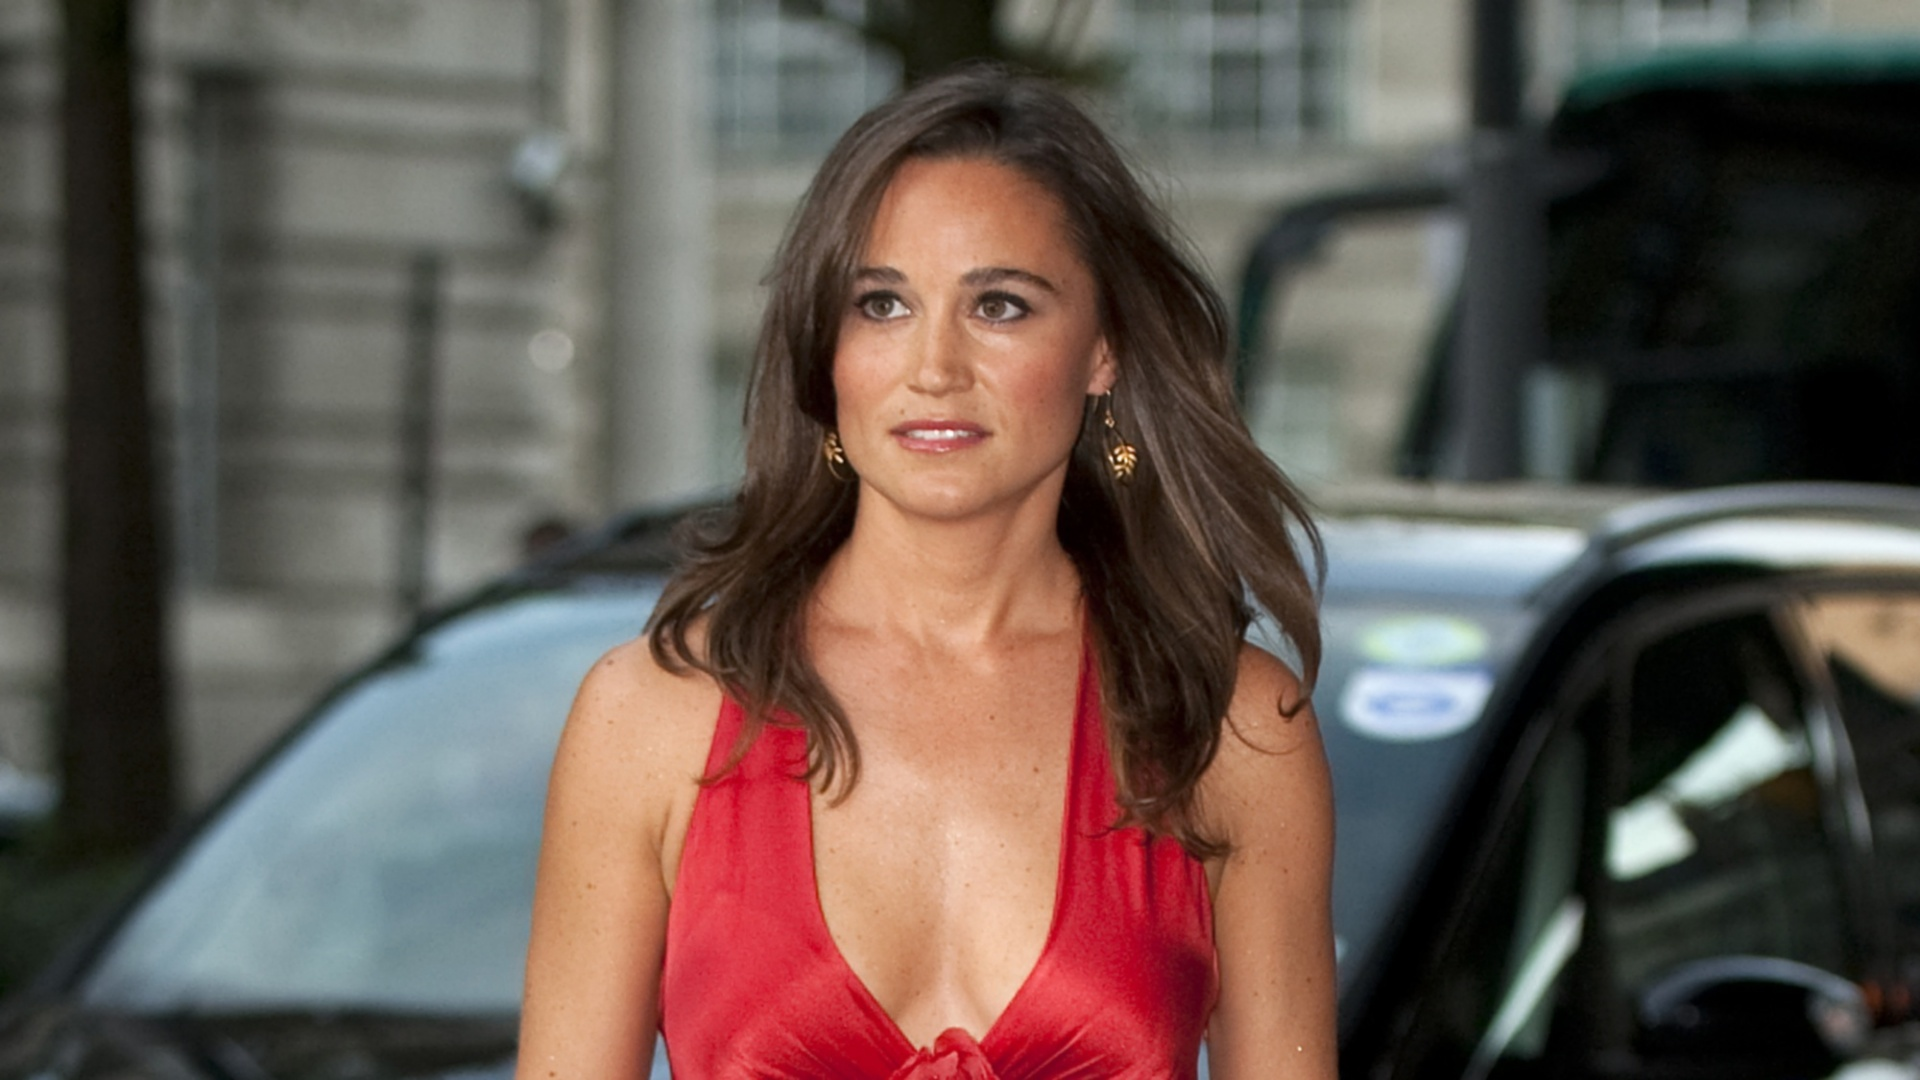 Pippa Middleton Images